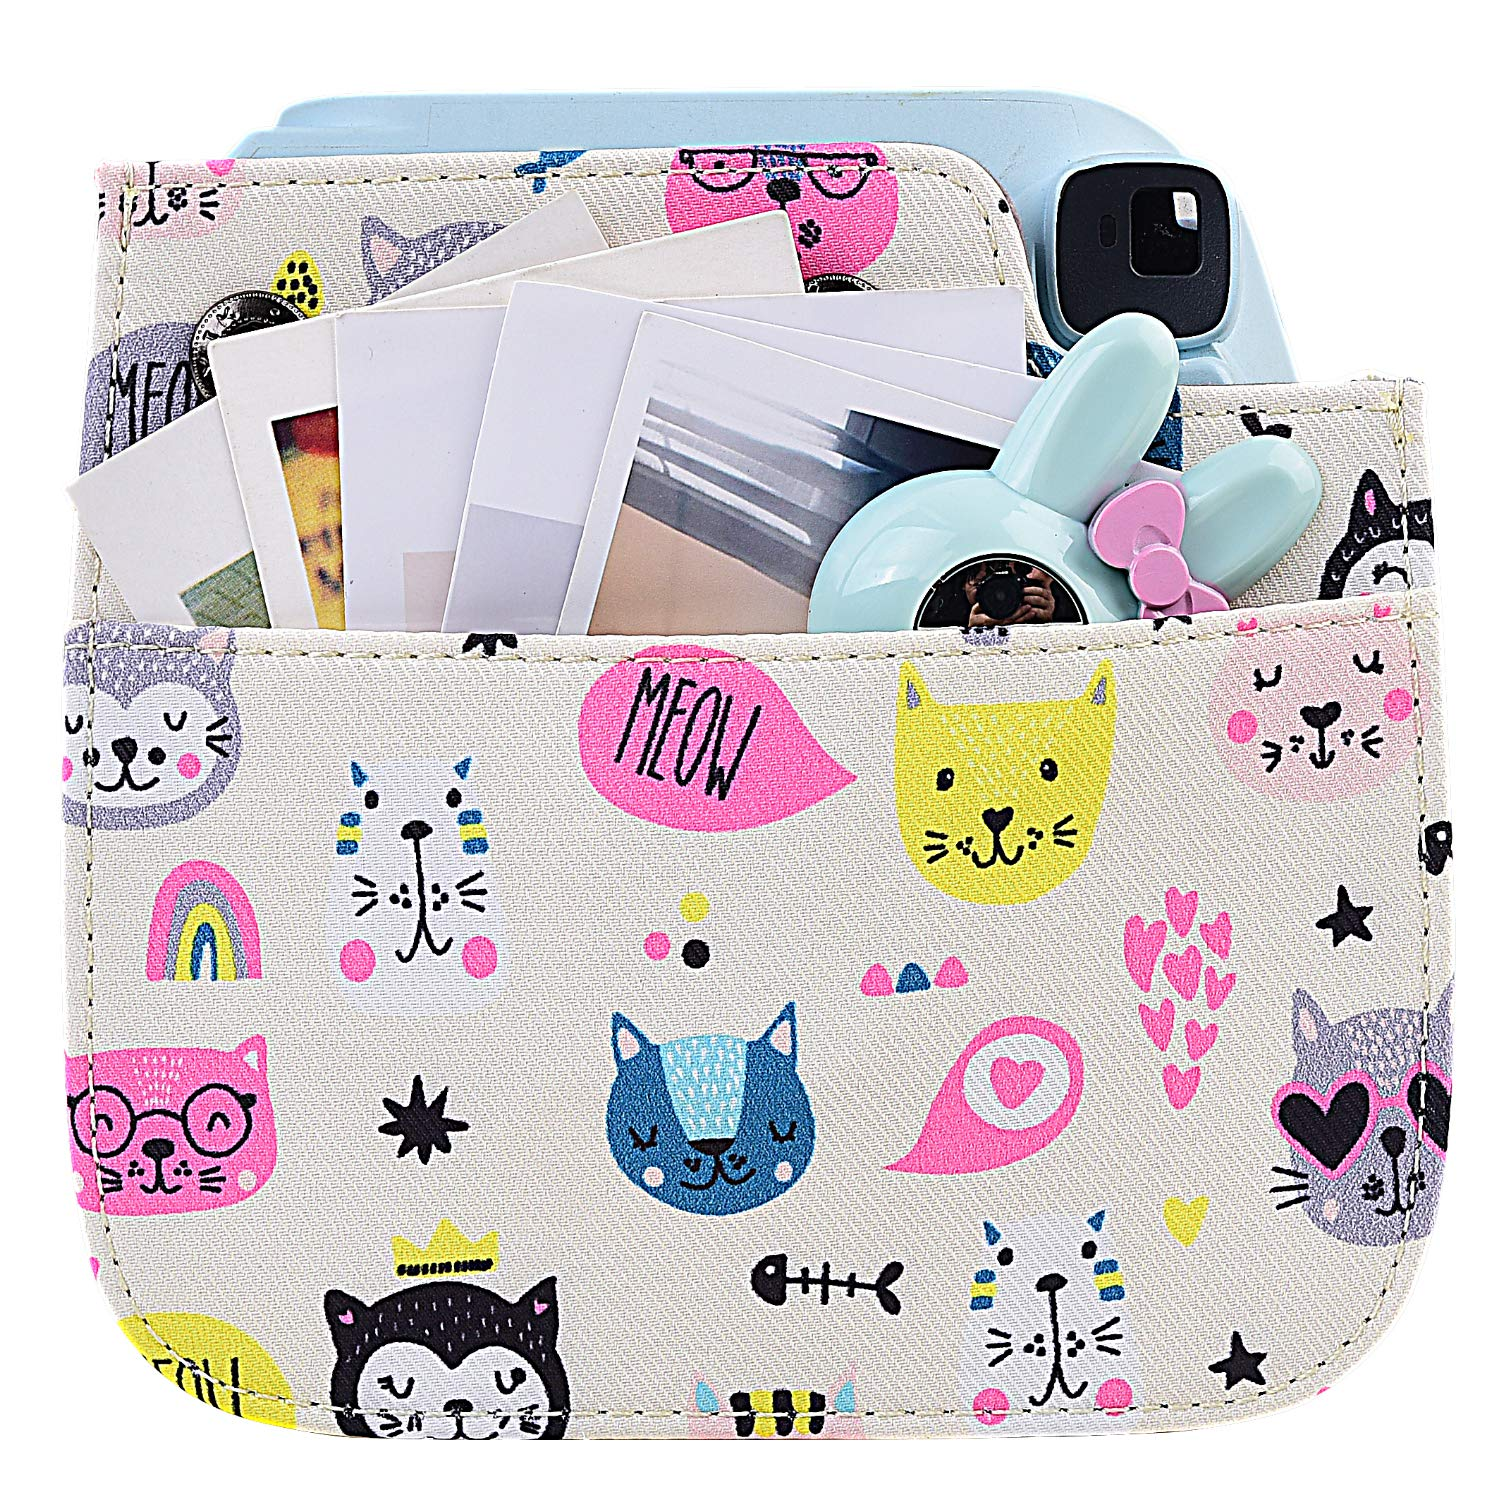 Kitty Instant Film Camera with Accessory Pocket and Adjustable Strap Protective Case for Fujifilm Instax Mini 9 8 8